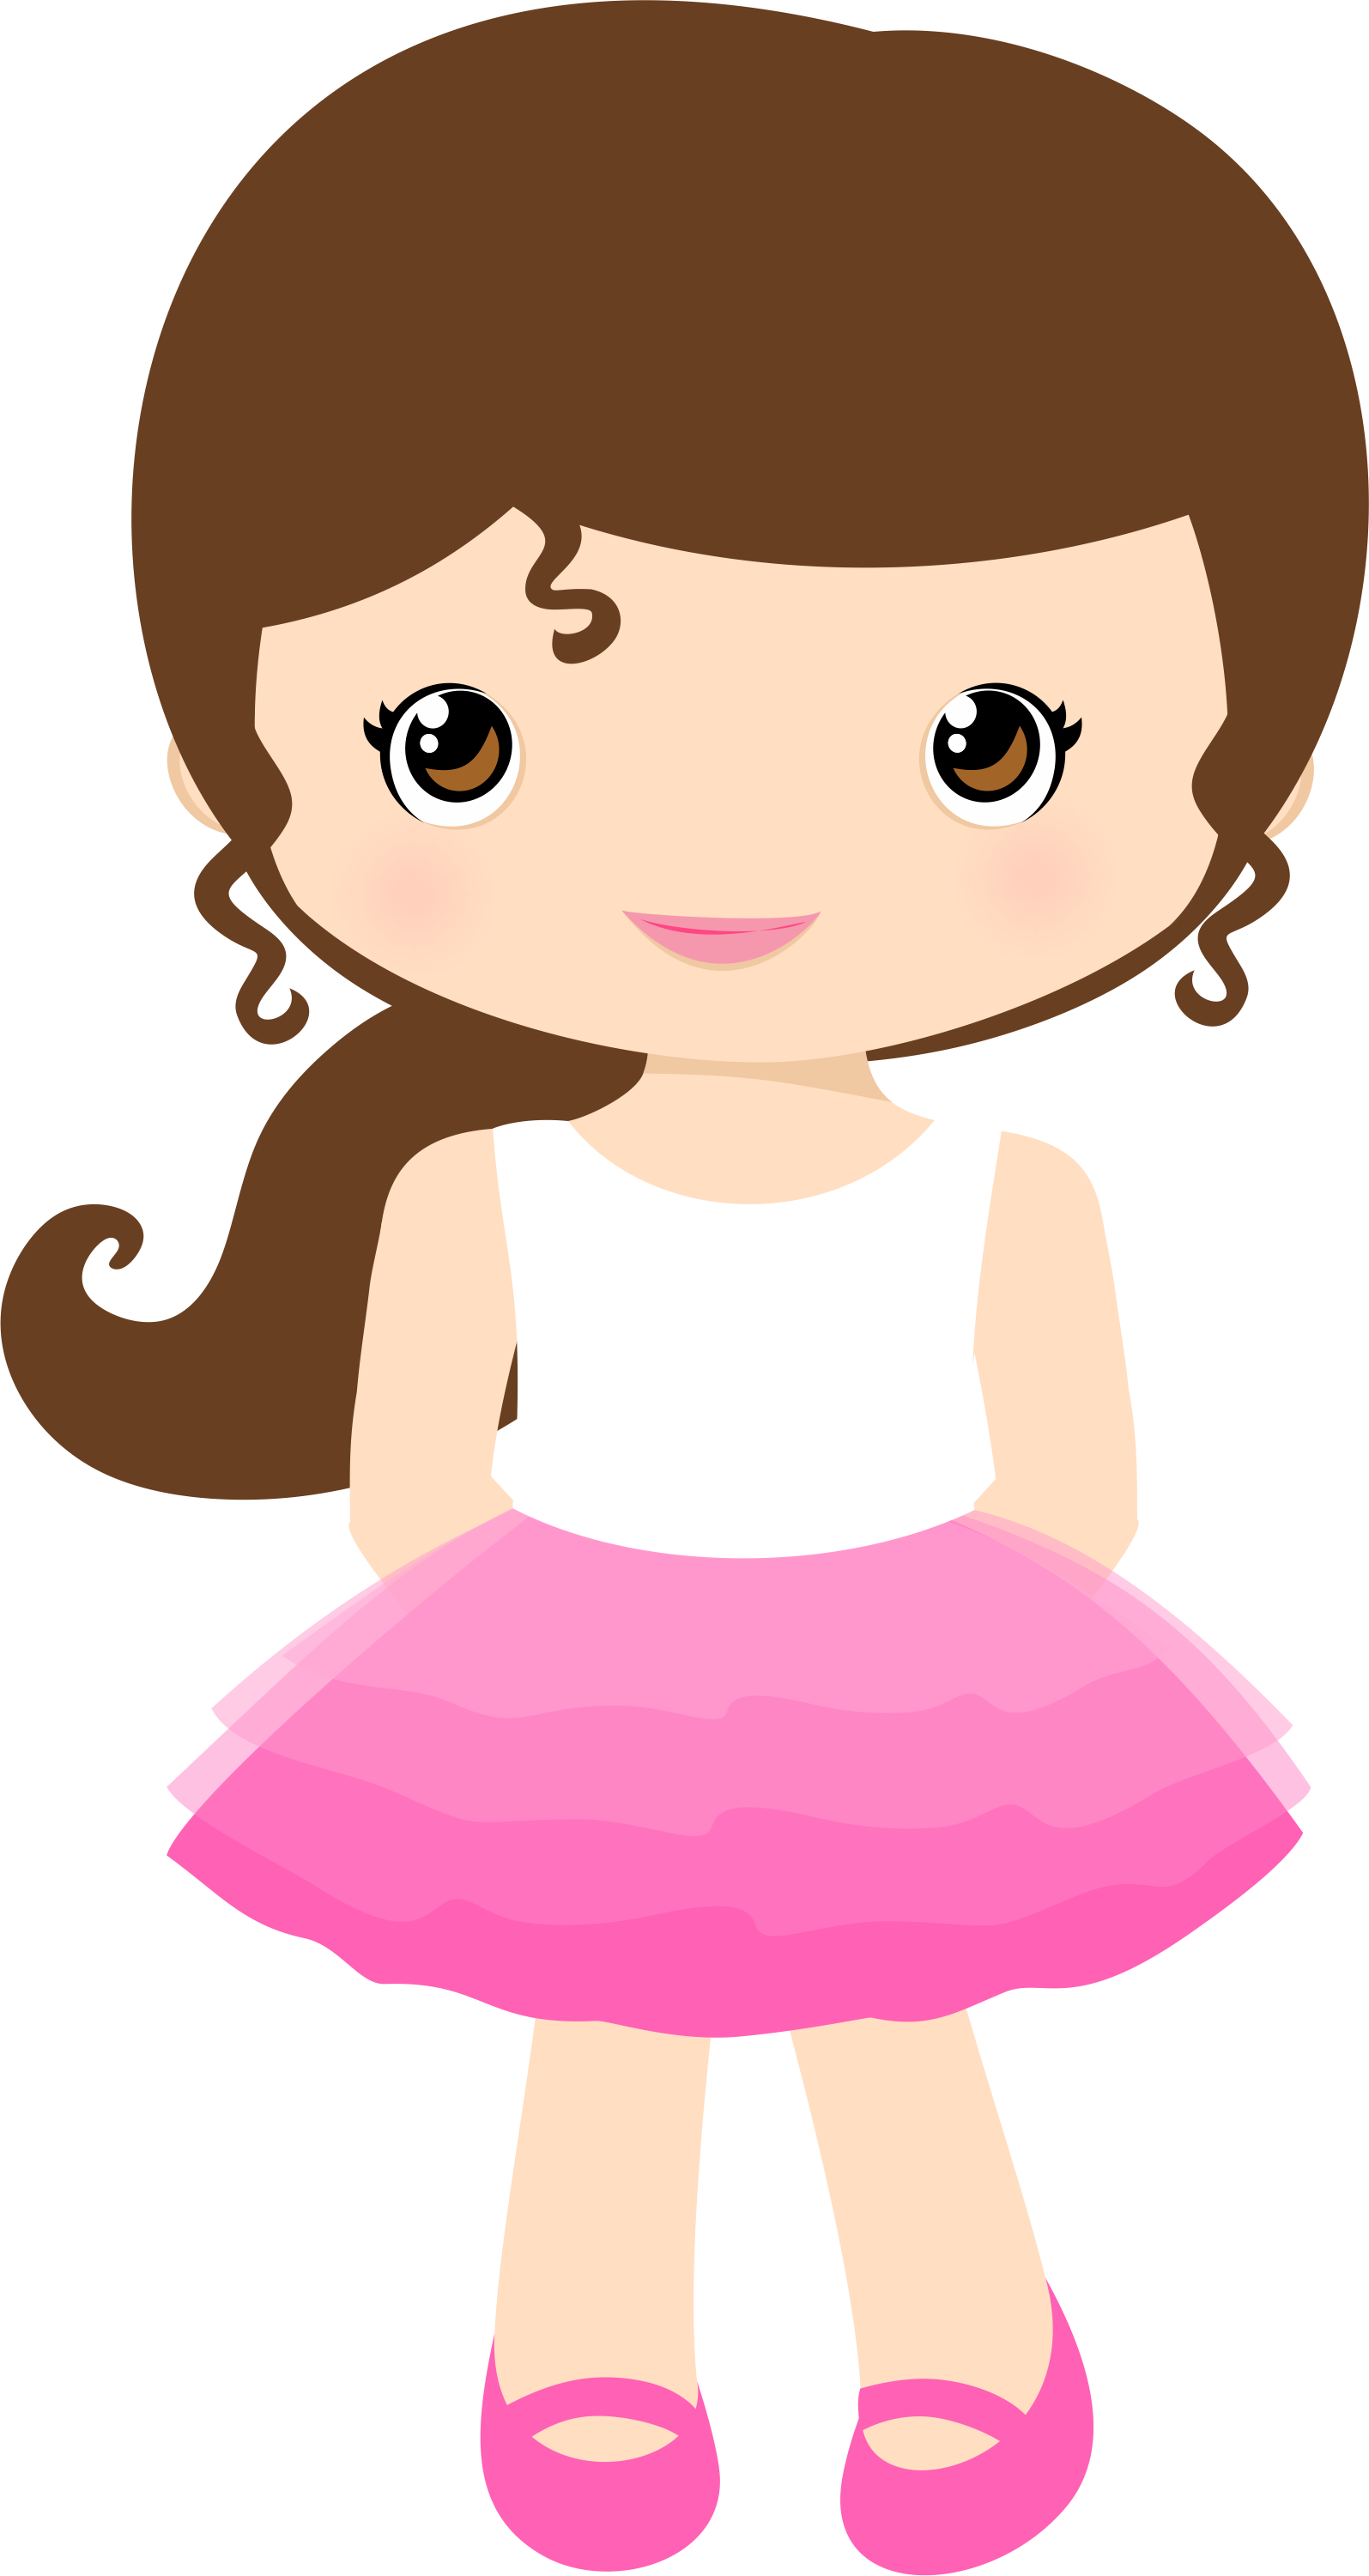 Iswx rwpzw gy png. Number 1 clipart girly